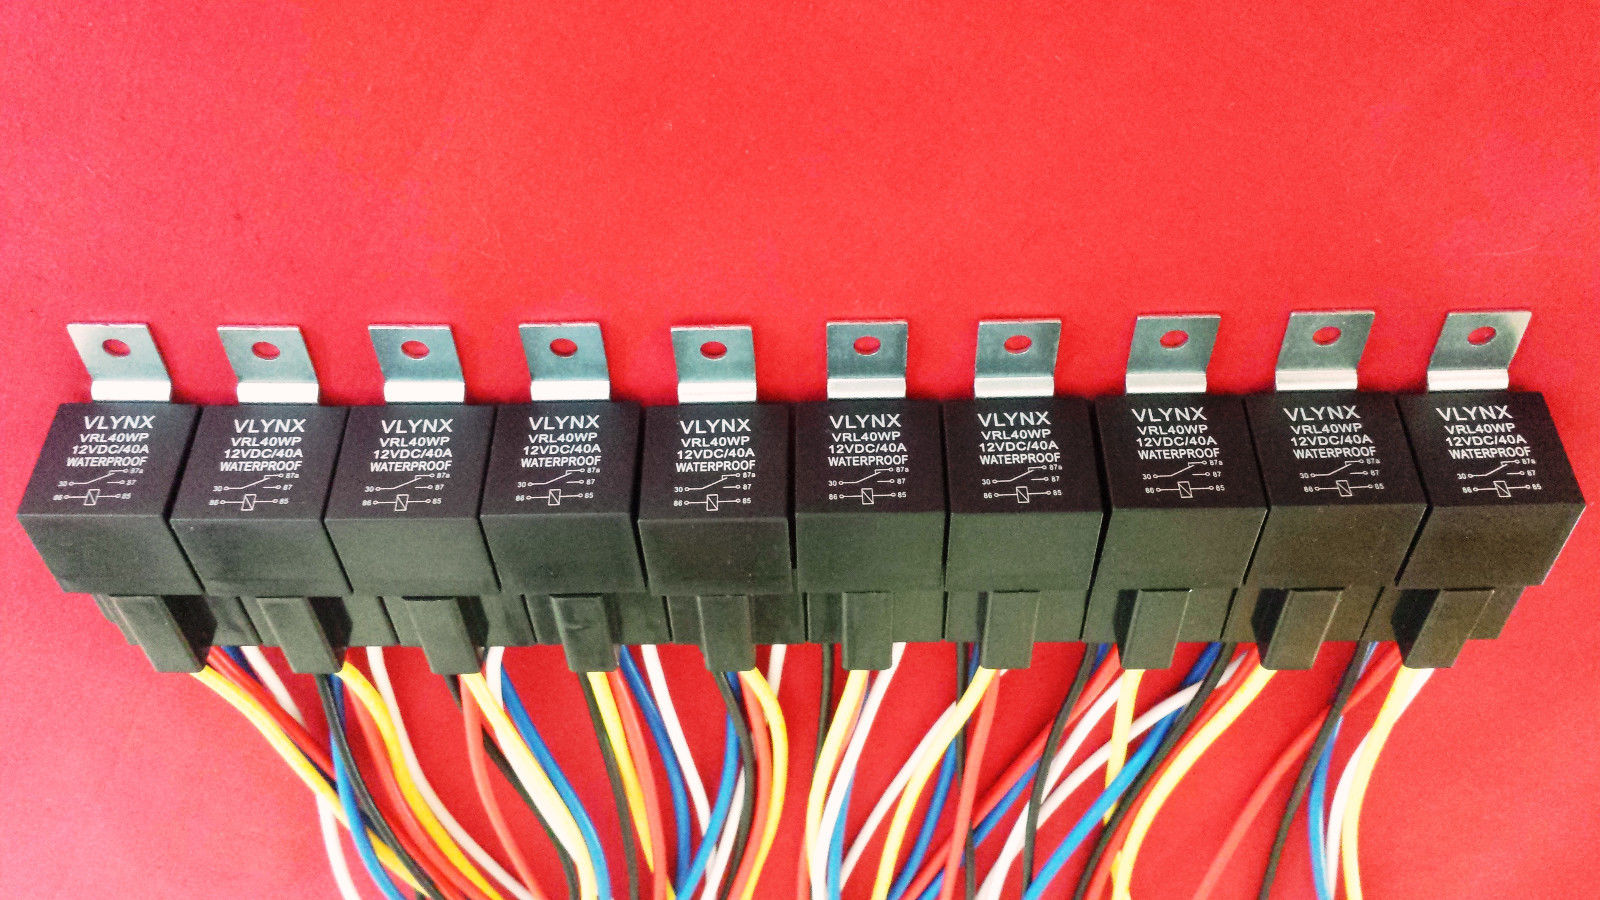 Marvelous 10 12V 40A Relay 10 5 Wire Socket Harness Spdt Wiring Digital Resources Xeirawoestevosnl